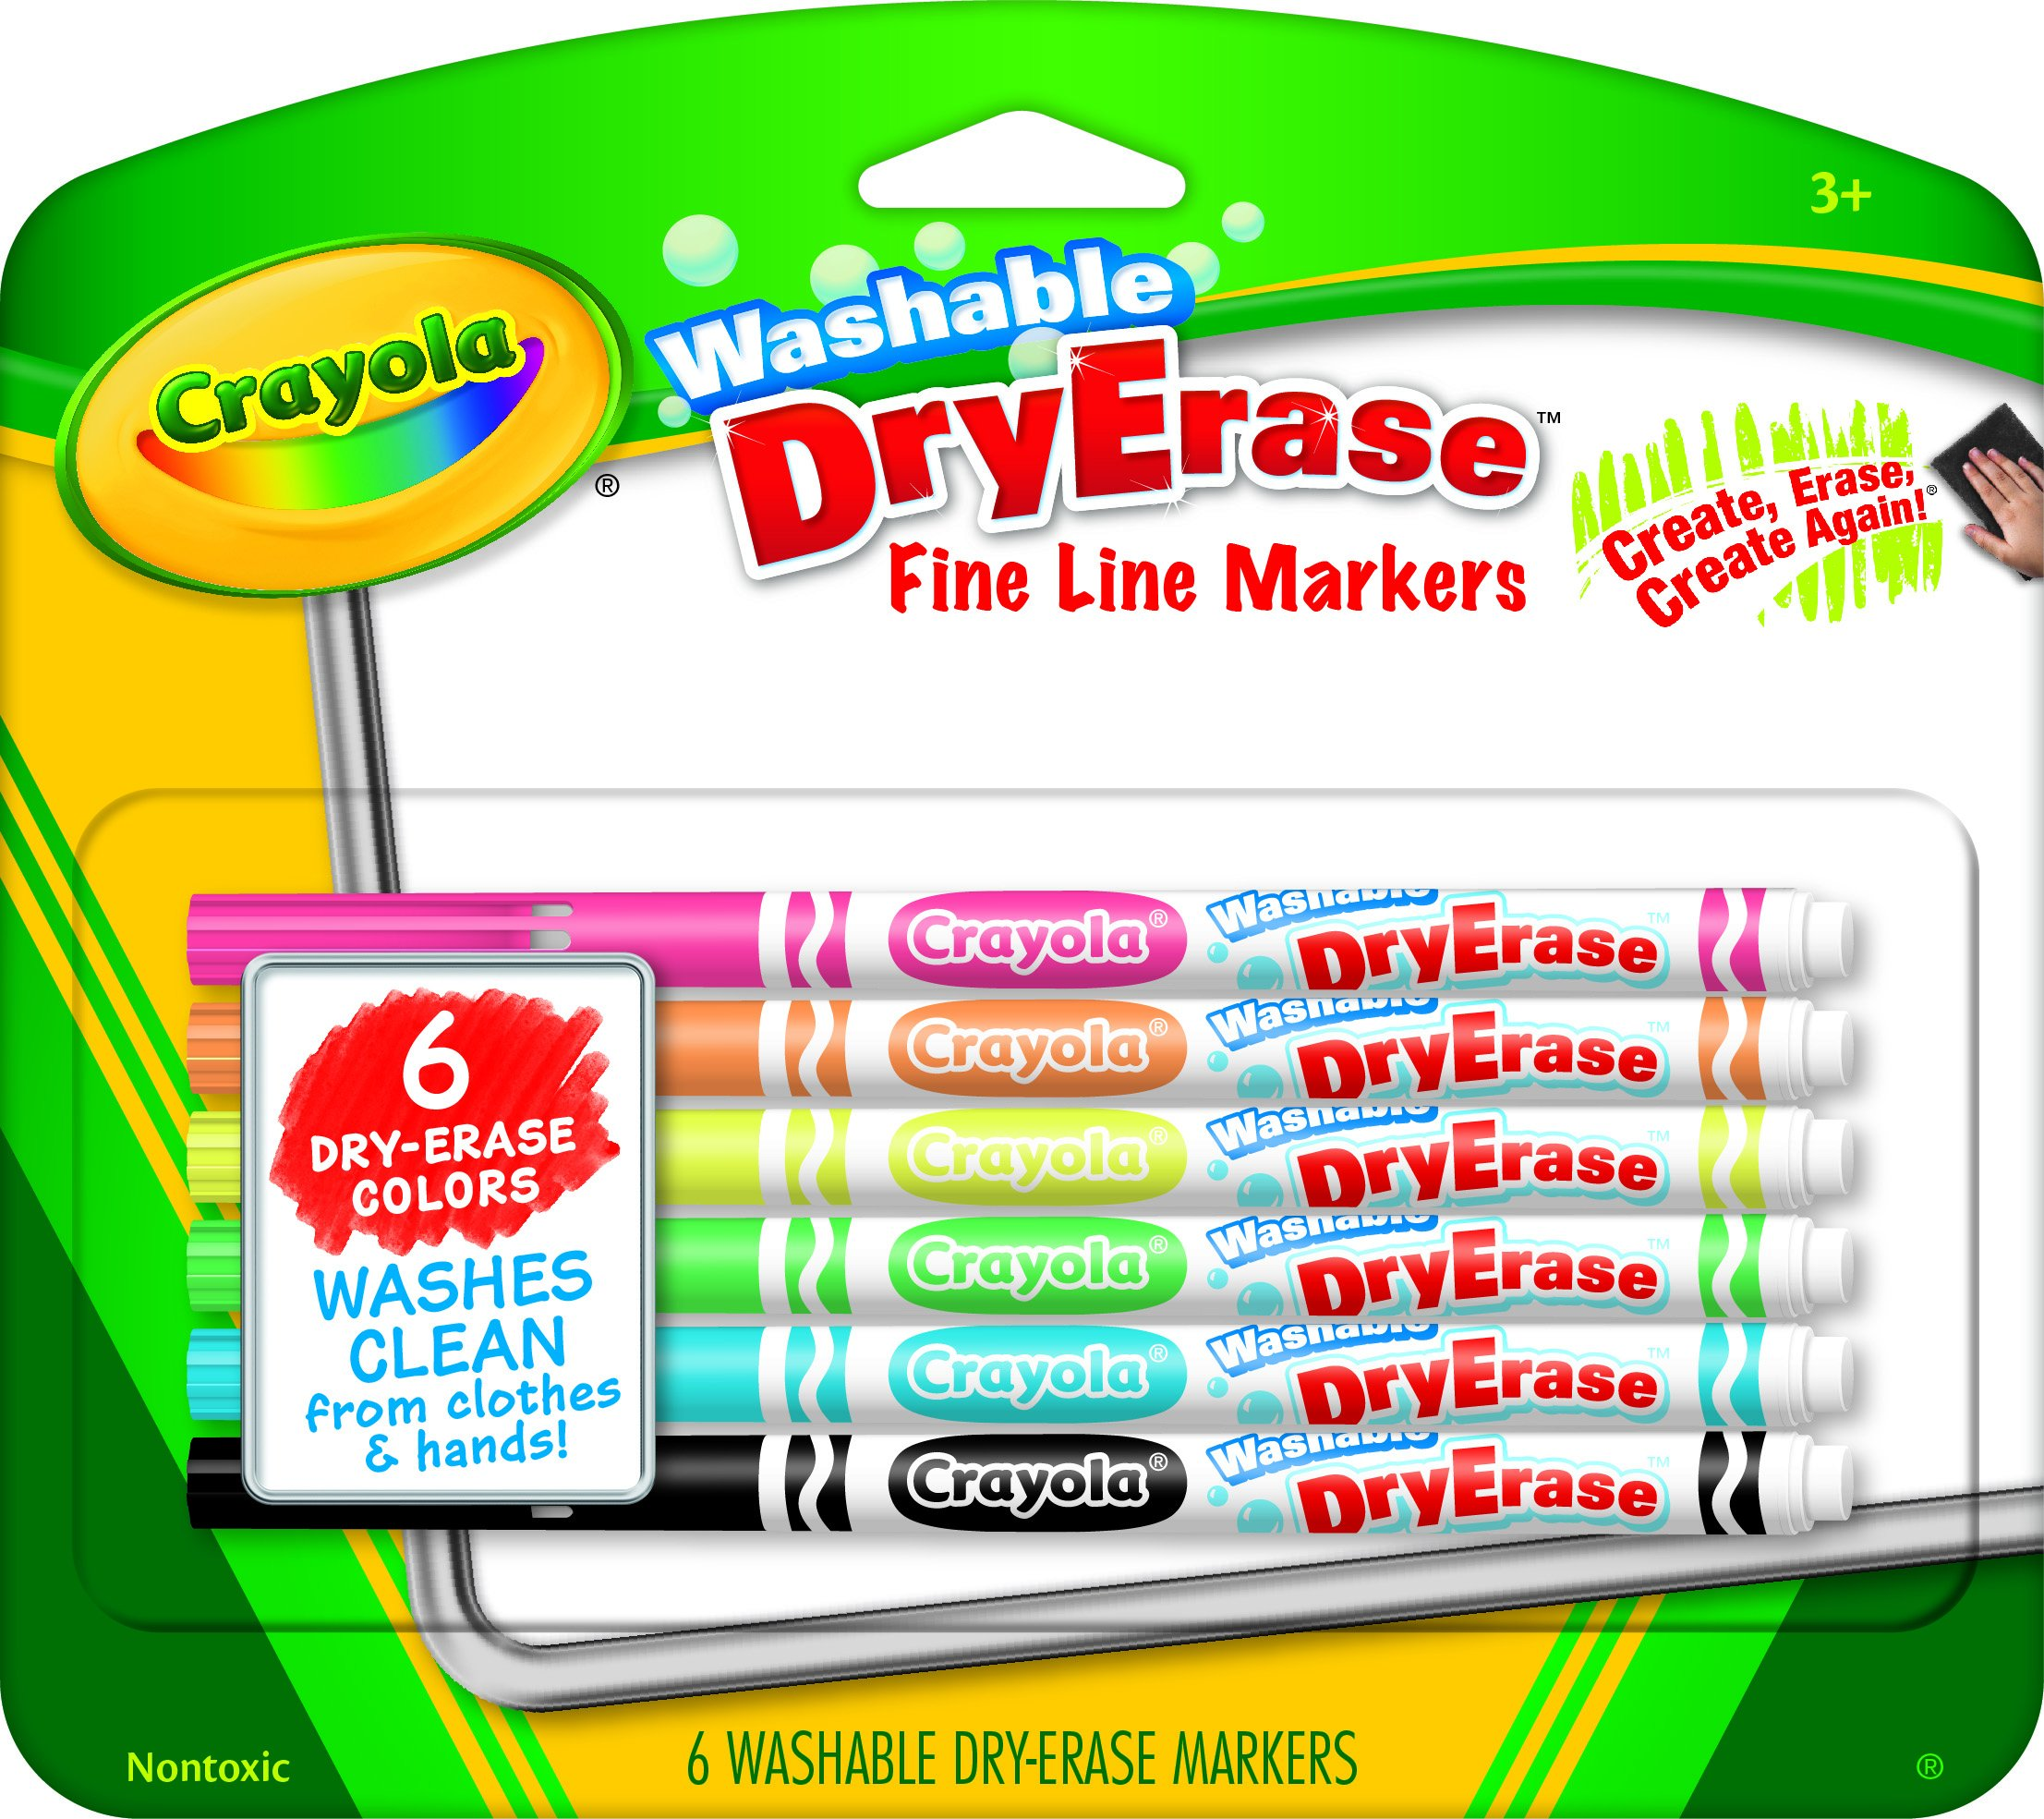 Crayola Washable Dry-Erase Fine Line Markers, 6 Classic Colors Non-Toxic Art Tools for Kids & Toddlers 3 & Up, Easy Clean Up, Won't Stain Hands or Clothes, Great for Classrooms - 98-5906 by Crayola (Image #1)